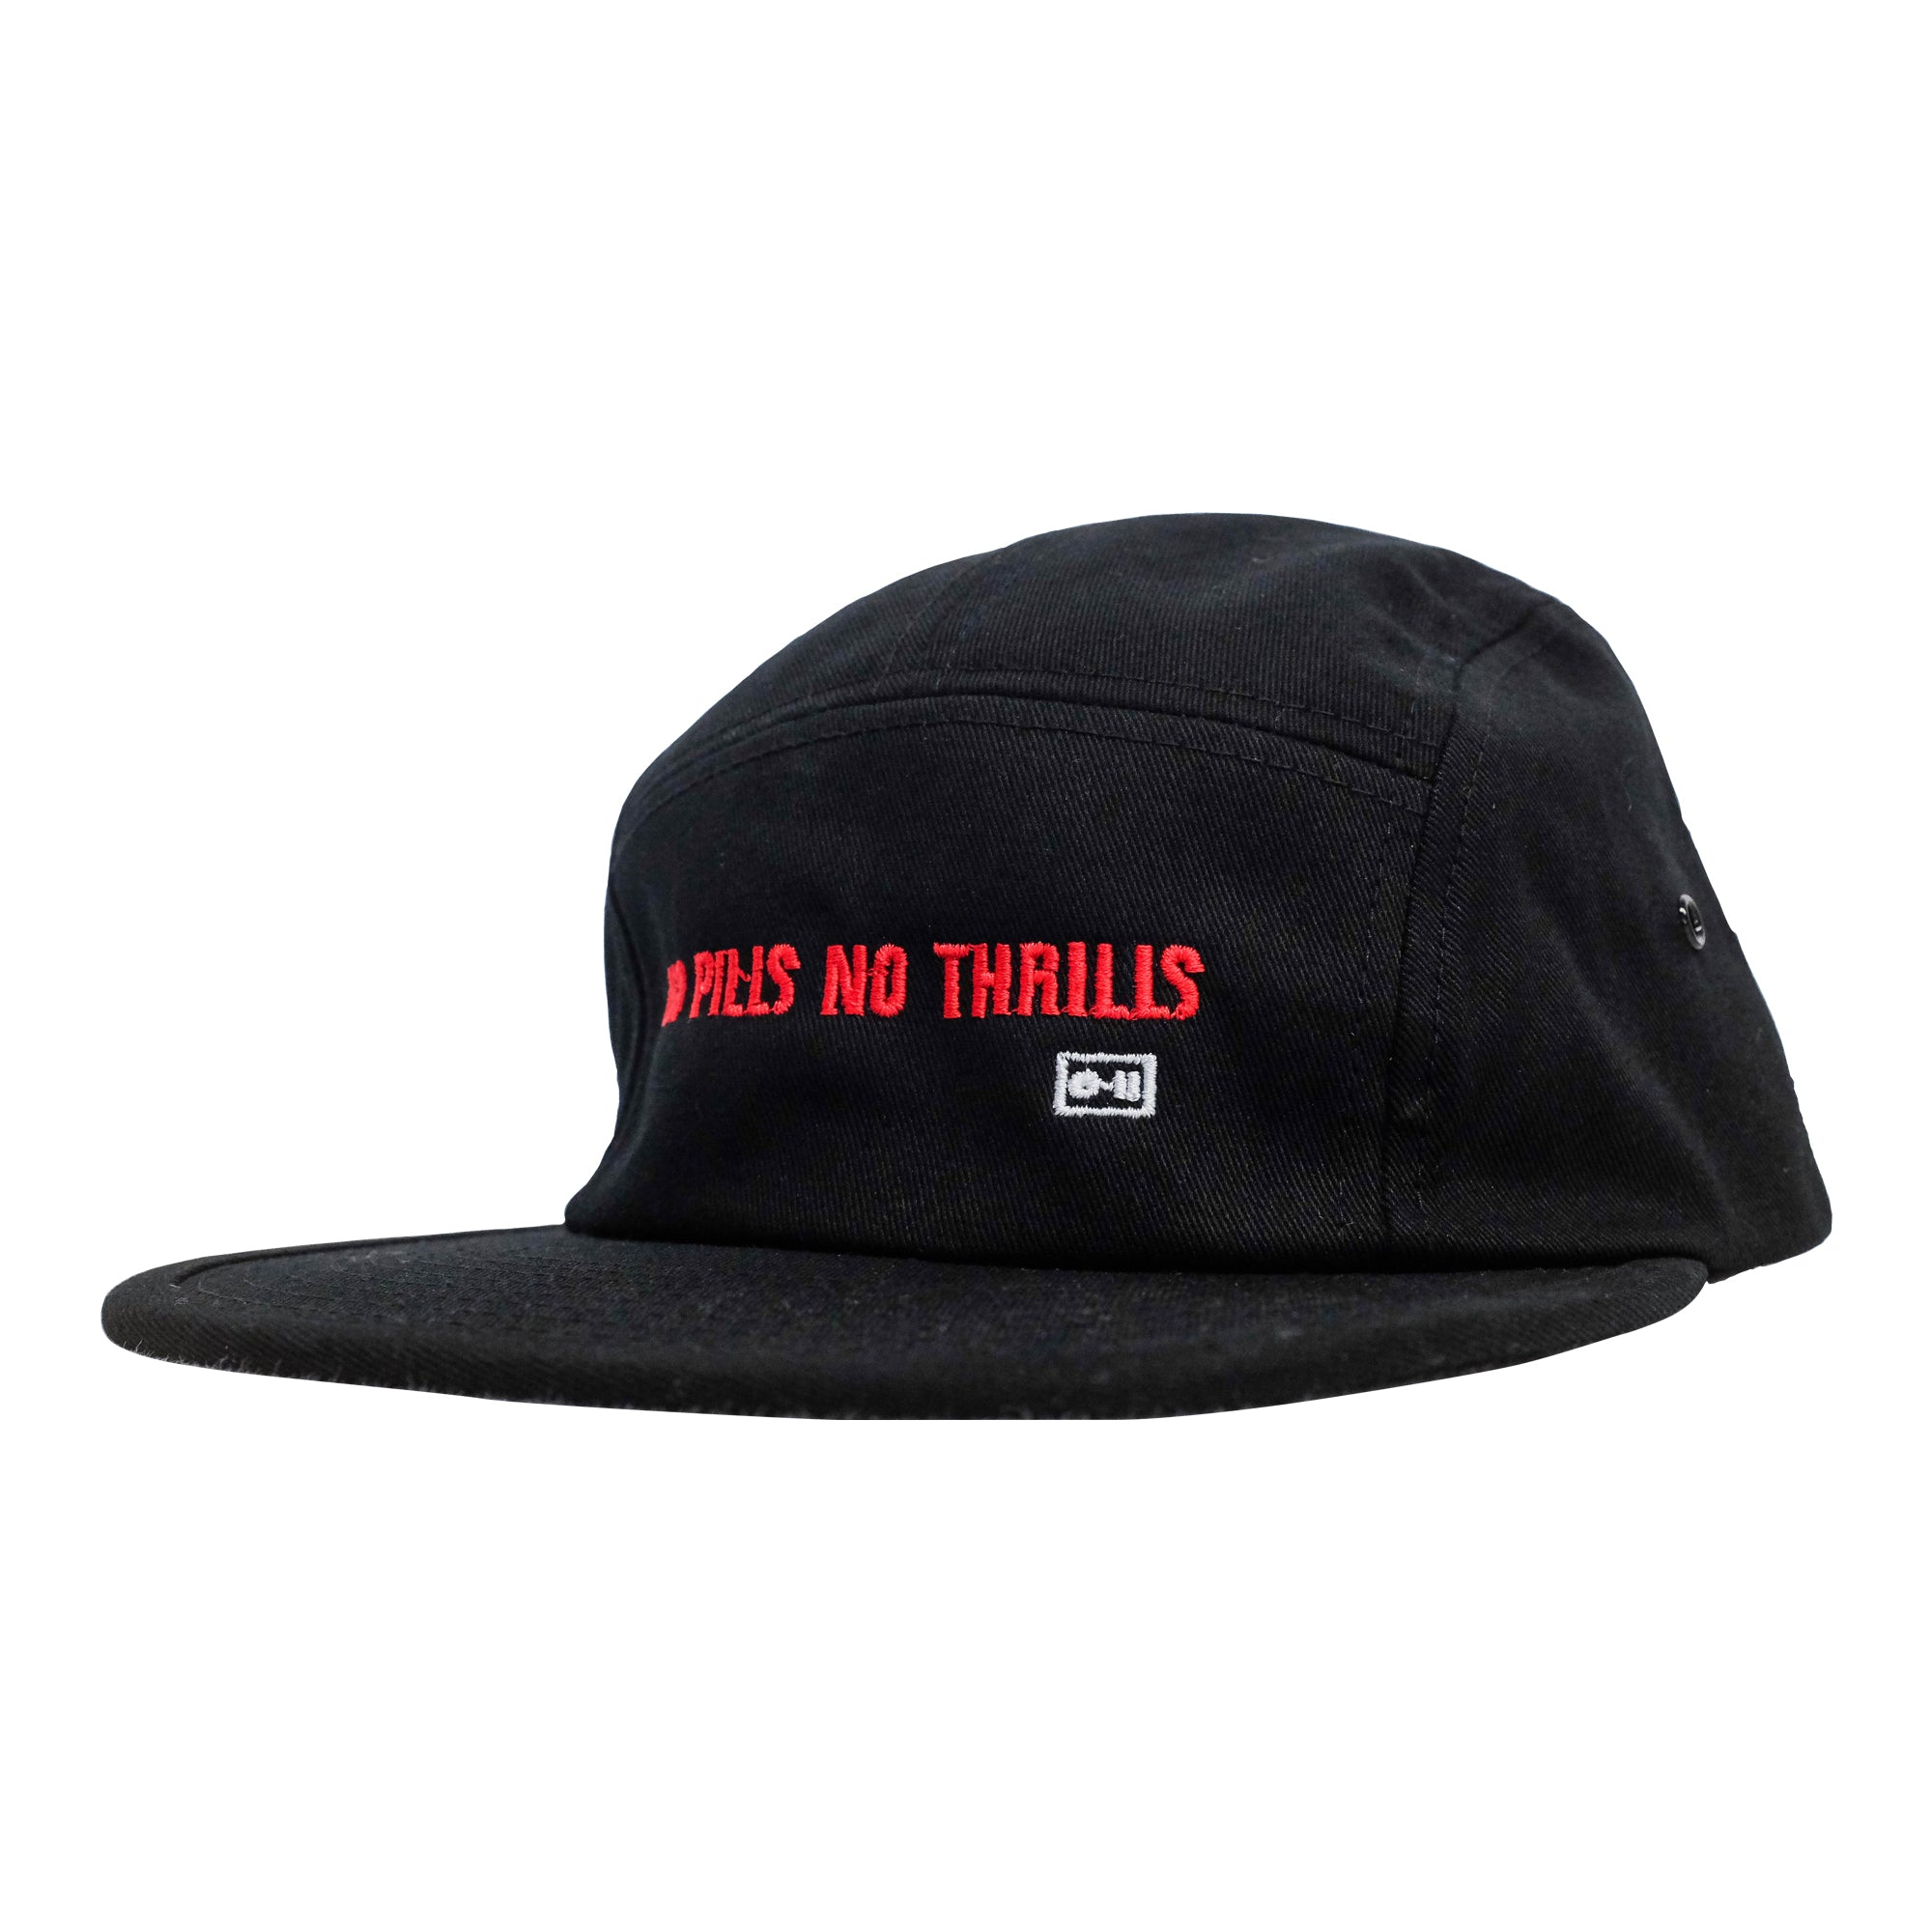 NO PILLS, NO THRILLS - 5 PANEL CAP